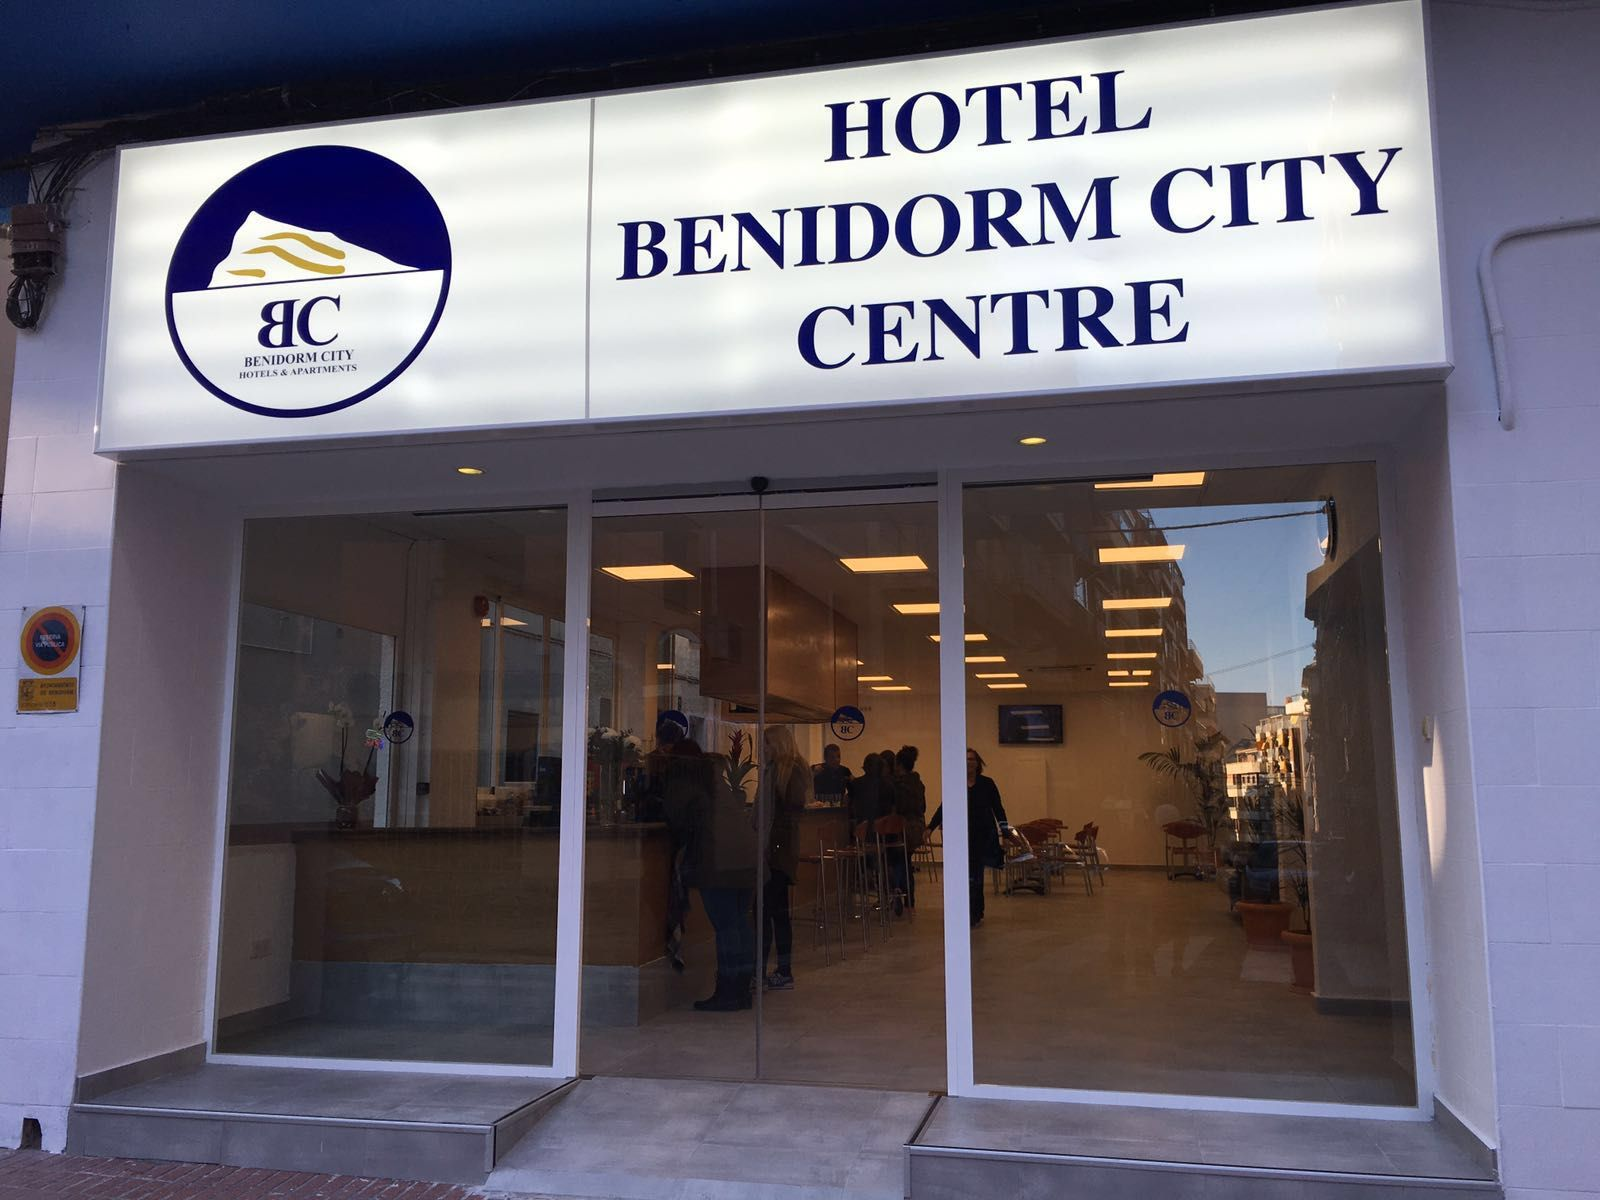 Benidorm City Centre